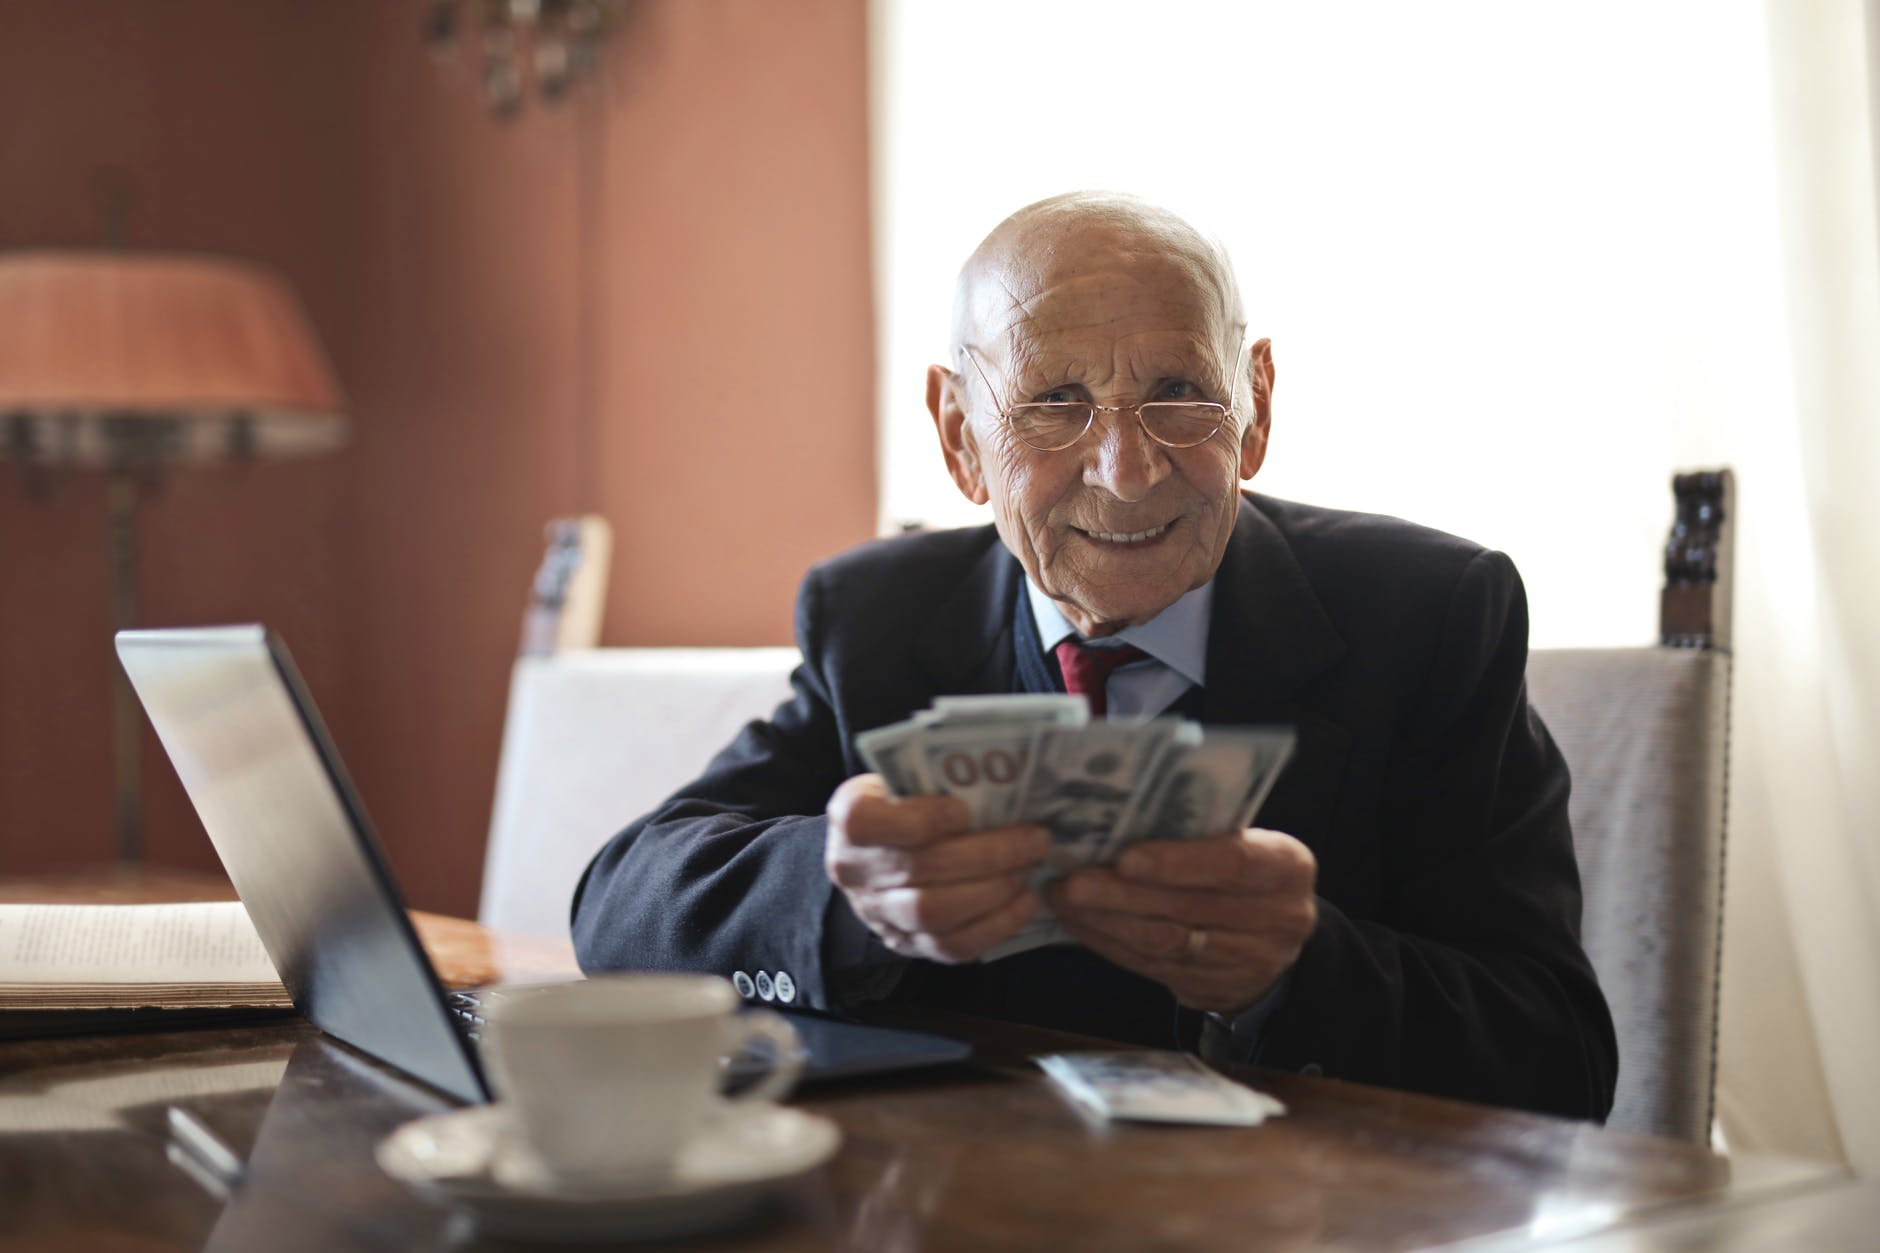 elderly businessman sitting in front of laptop holding a fan of manner